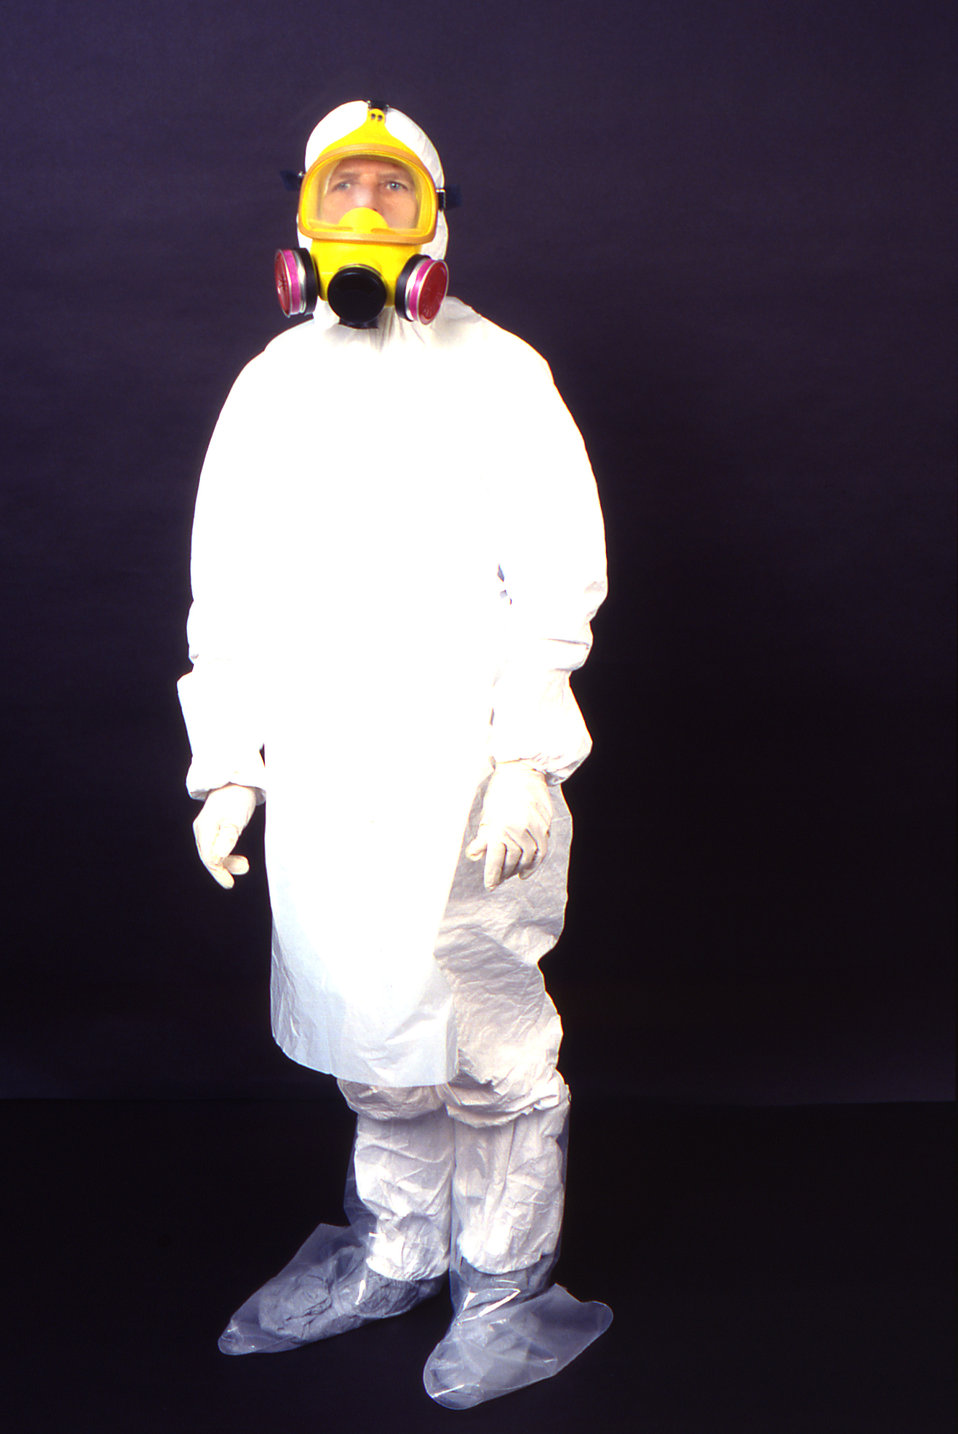 This 1995 image depicts a left anterior-oblique view of a laboratory technician wearing garments usually worn by field techs including a dis